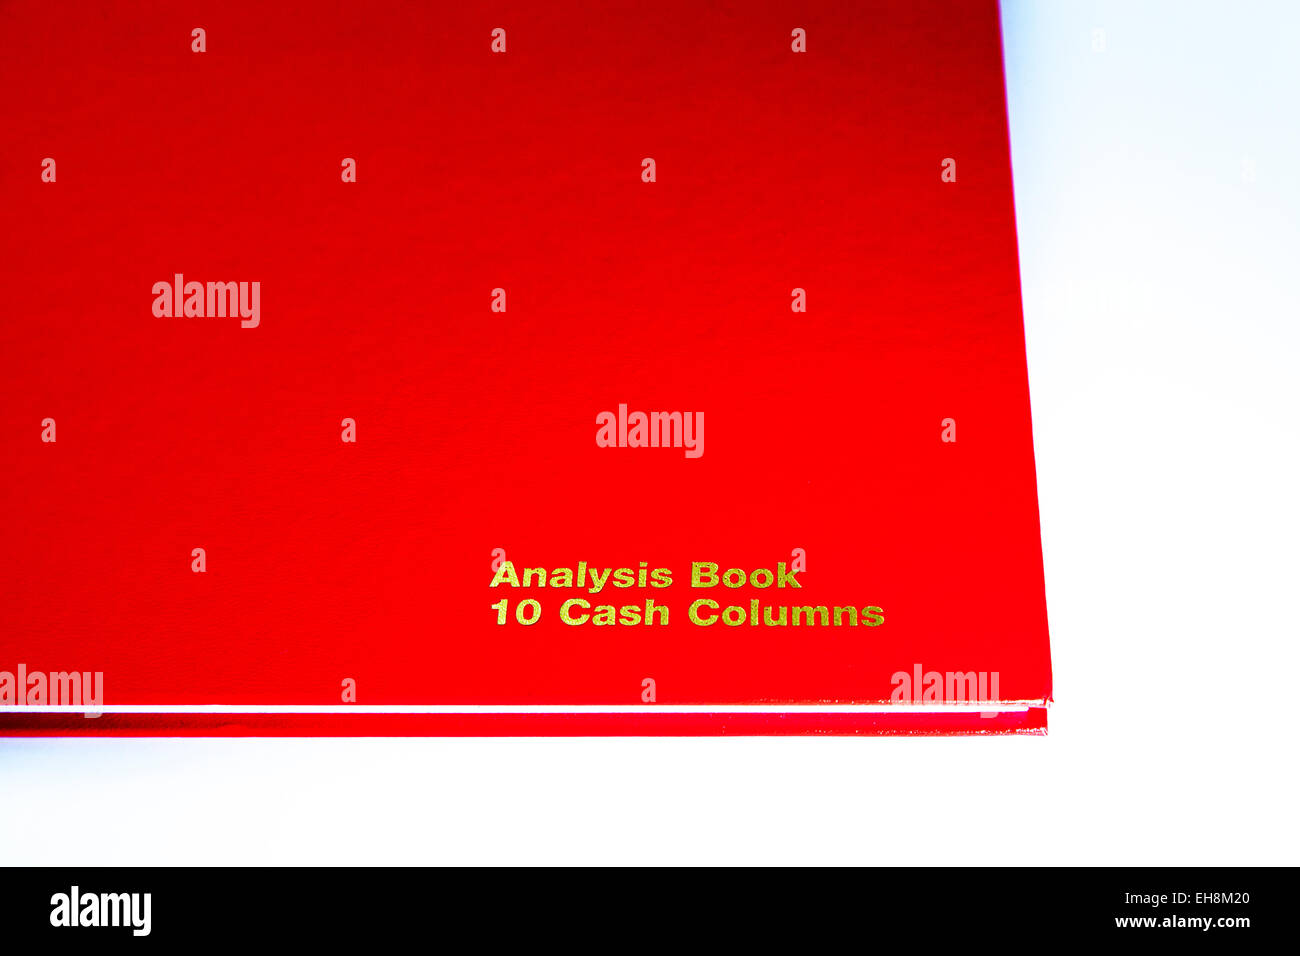 Analysis book keeping accounts ledger cash columns hardback red product cutout white background copy space isolated - Stock Image